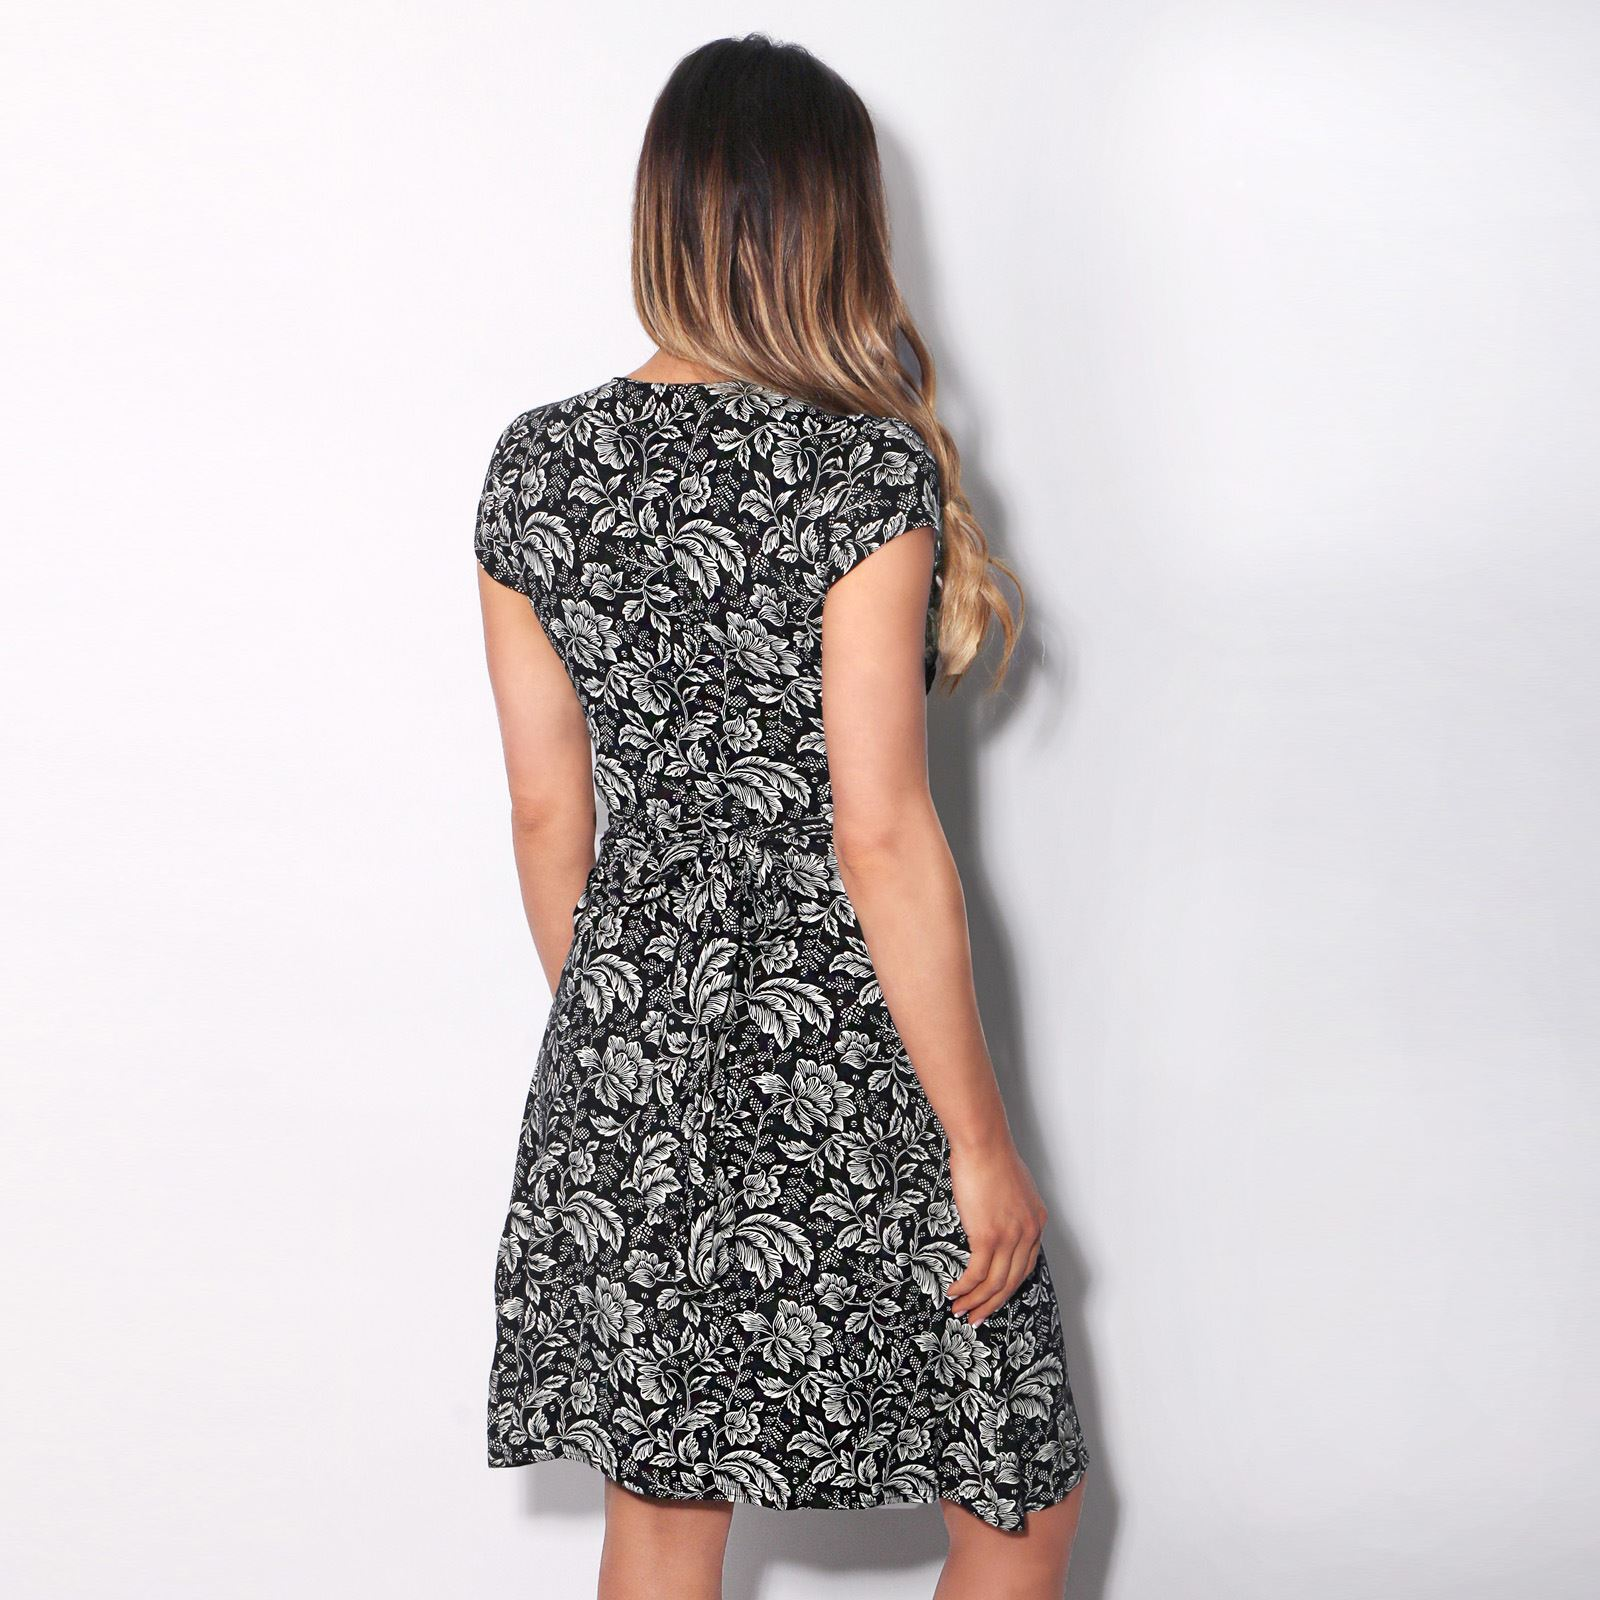 Womens-Ladies-V-Neck-Mini-Midi-Dress-Floral-Print-Knot-Short-Skirt-Party-Casual thumbnail 7